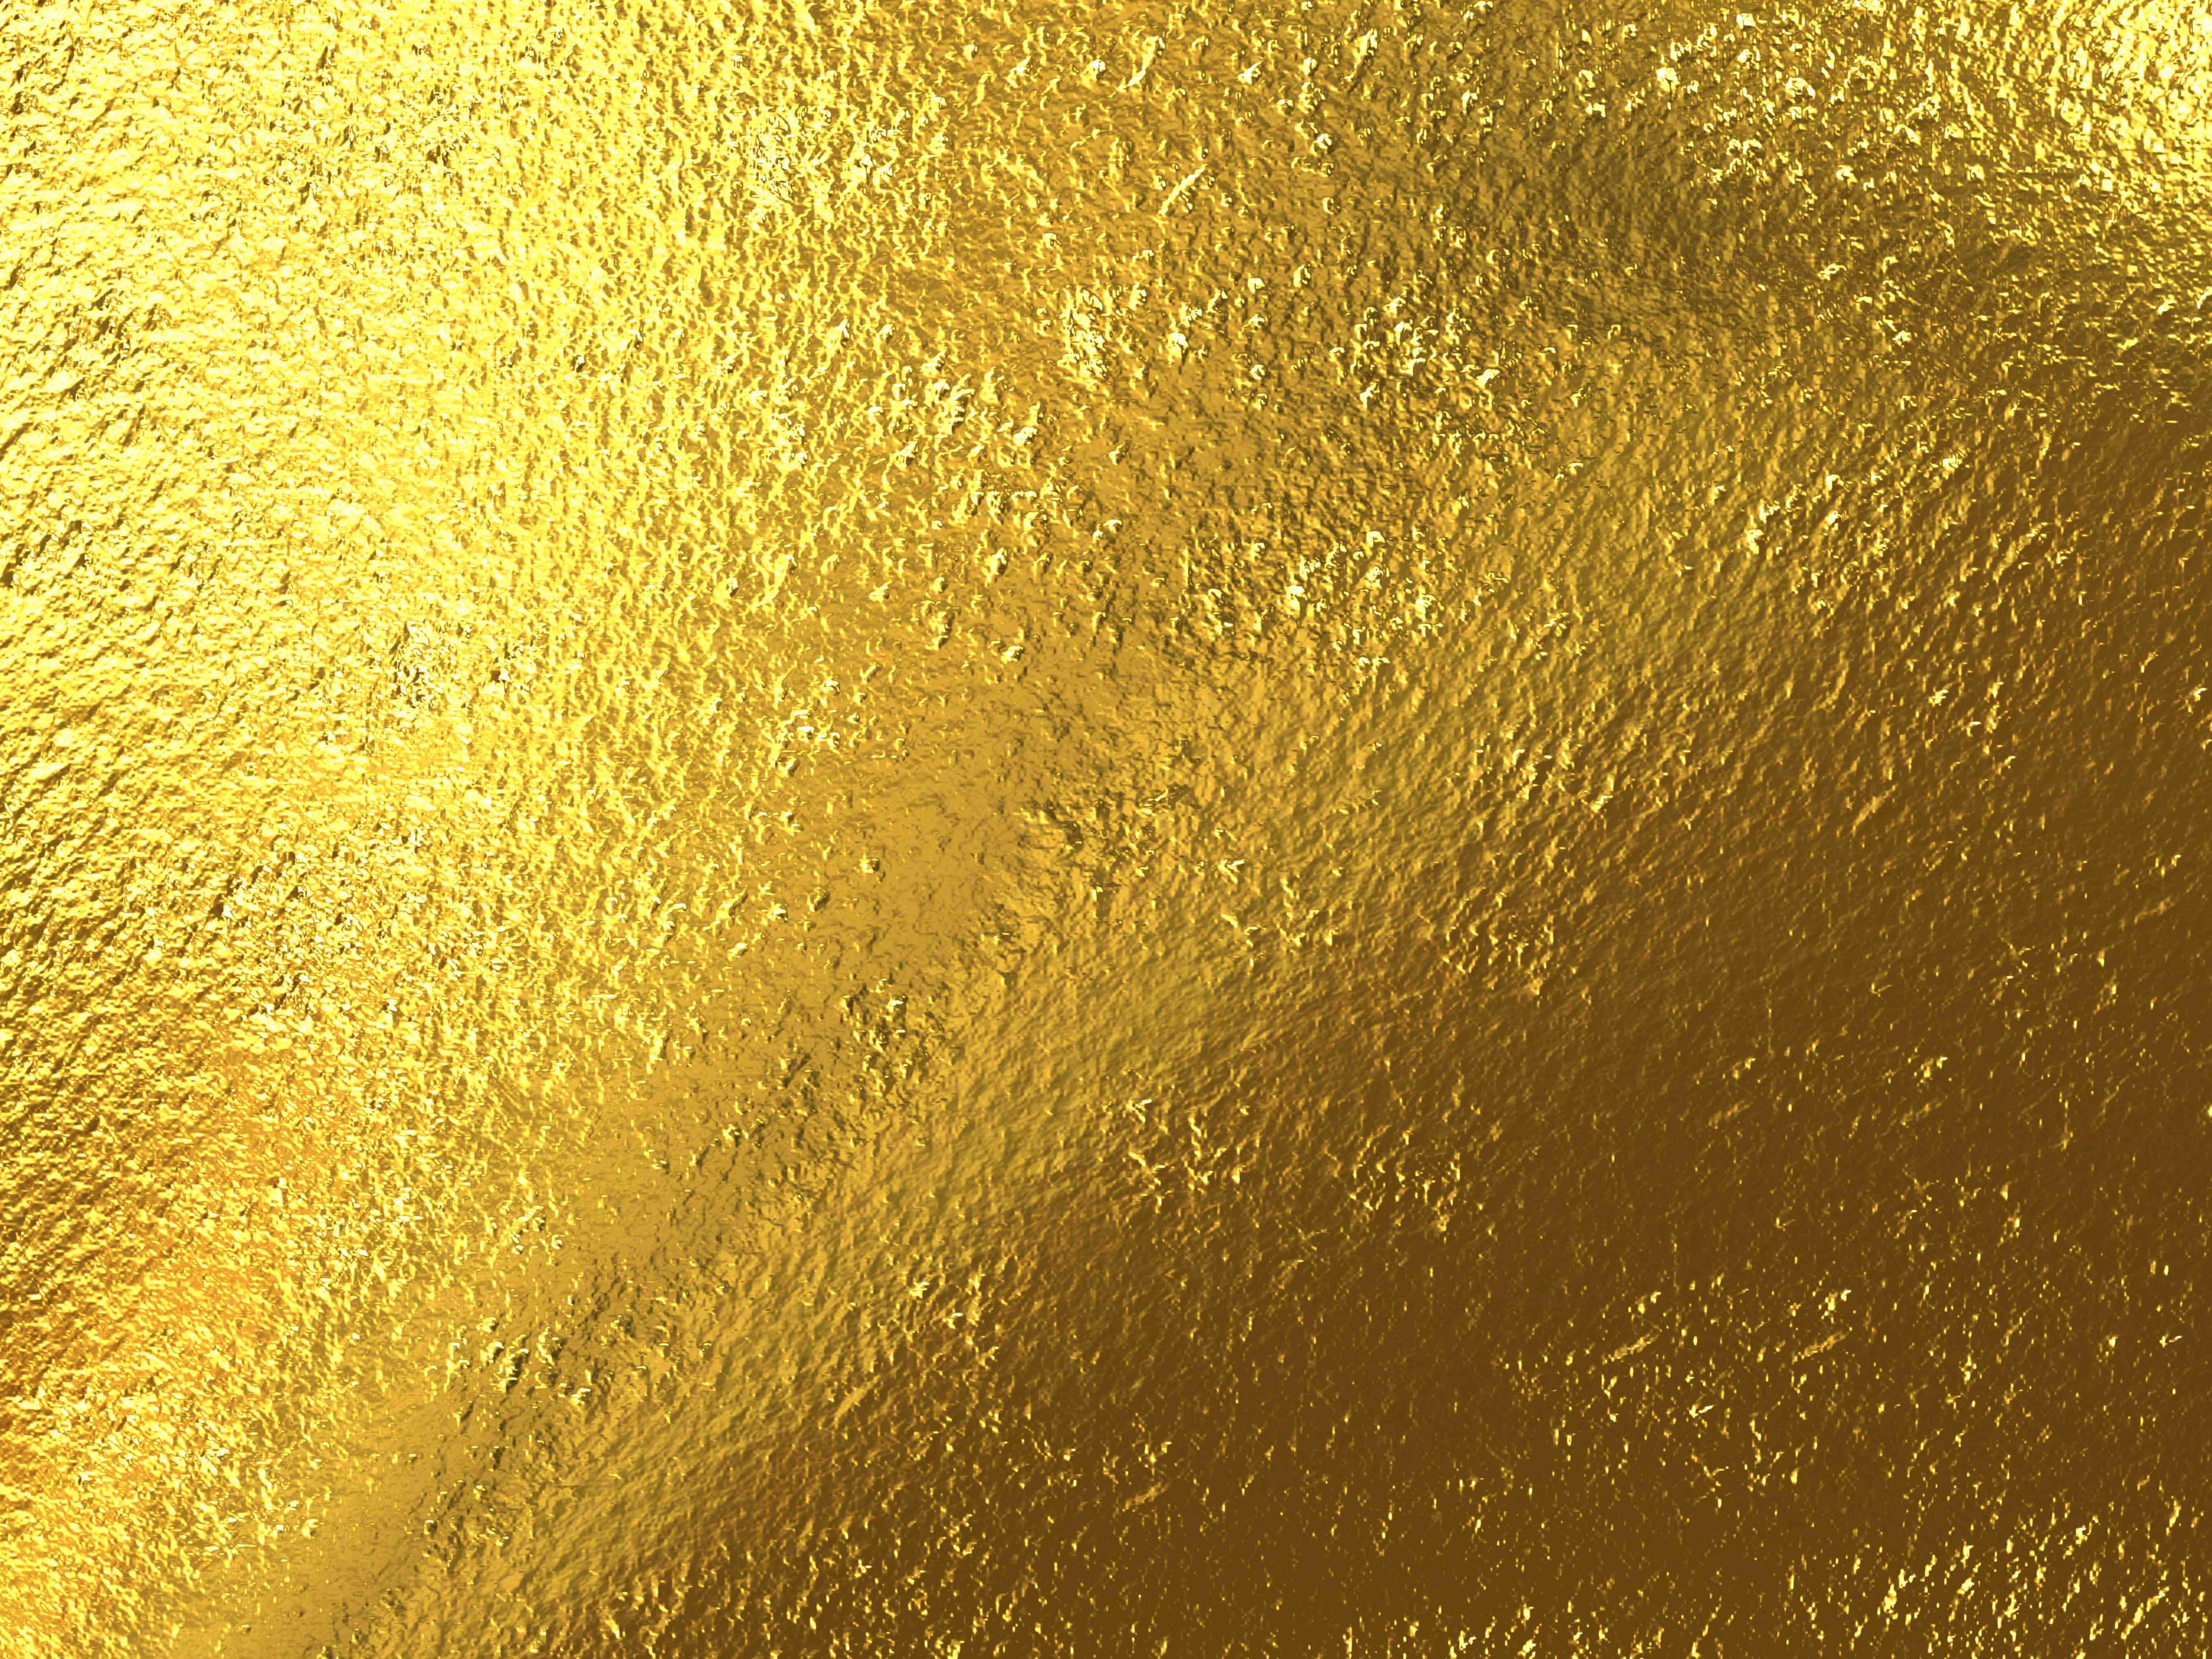 Gold Background 2 Colors Elements Pinterest Gold HD Wallpapers Download Free Images Wallpaper [1000image.com]